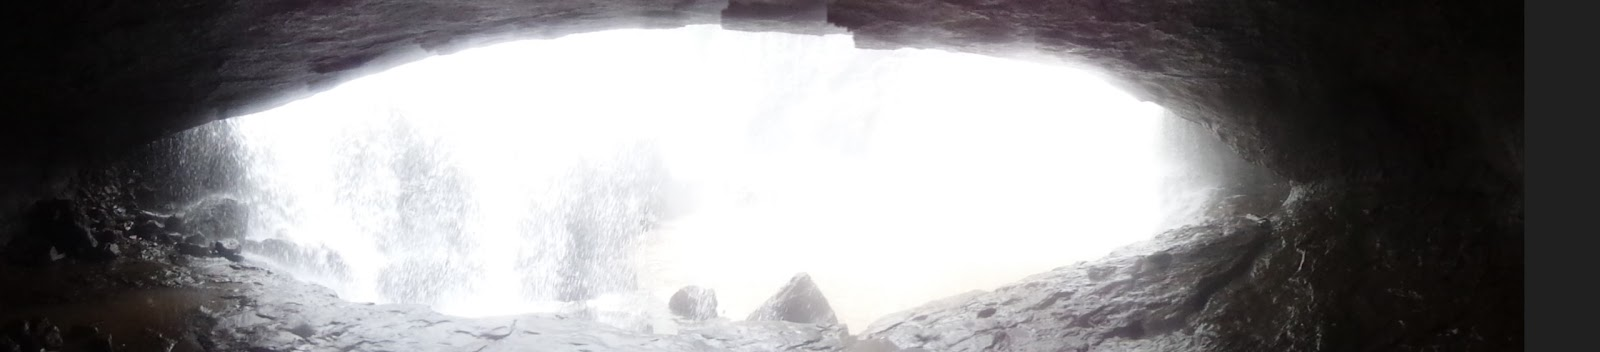 Kataldhar waterfall caves panoramic view